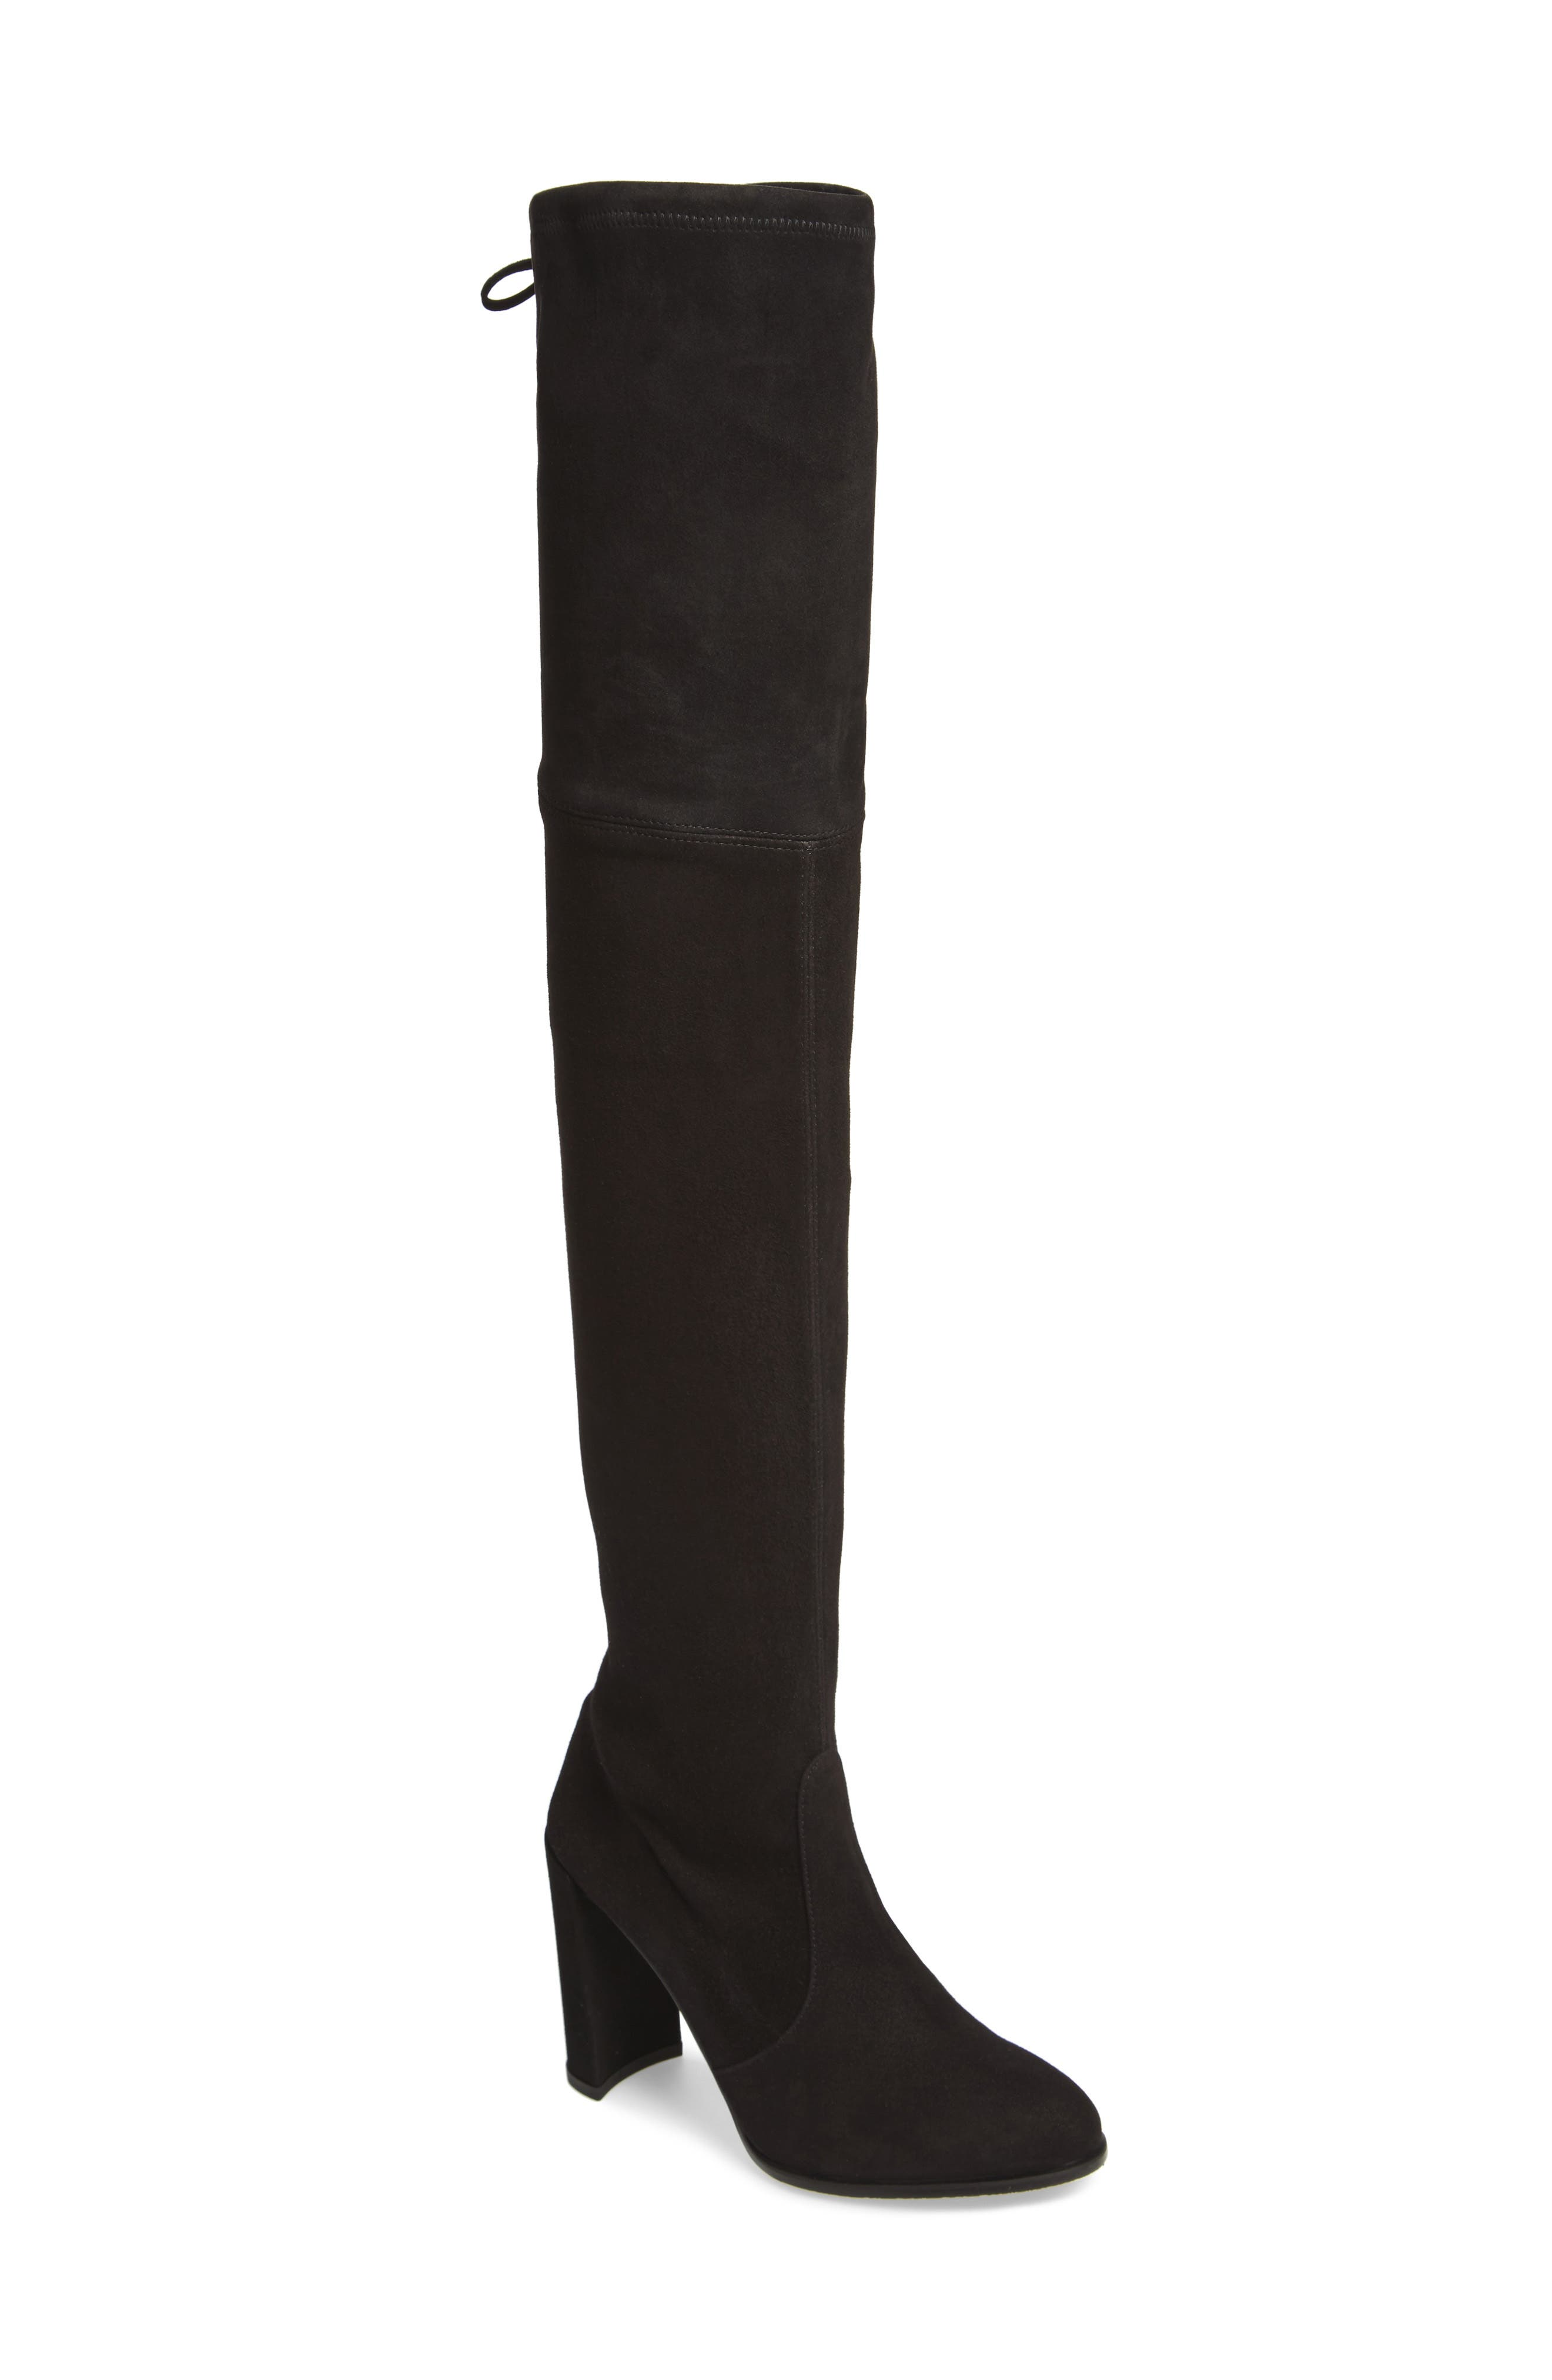 Hiline Over the Knee Boot,                             Main thumbnail 1, color,                             Black Suede